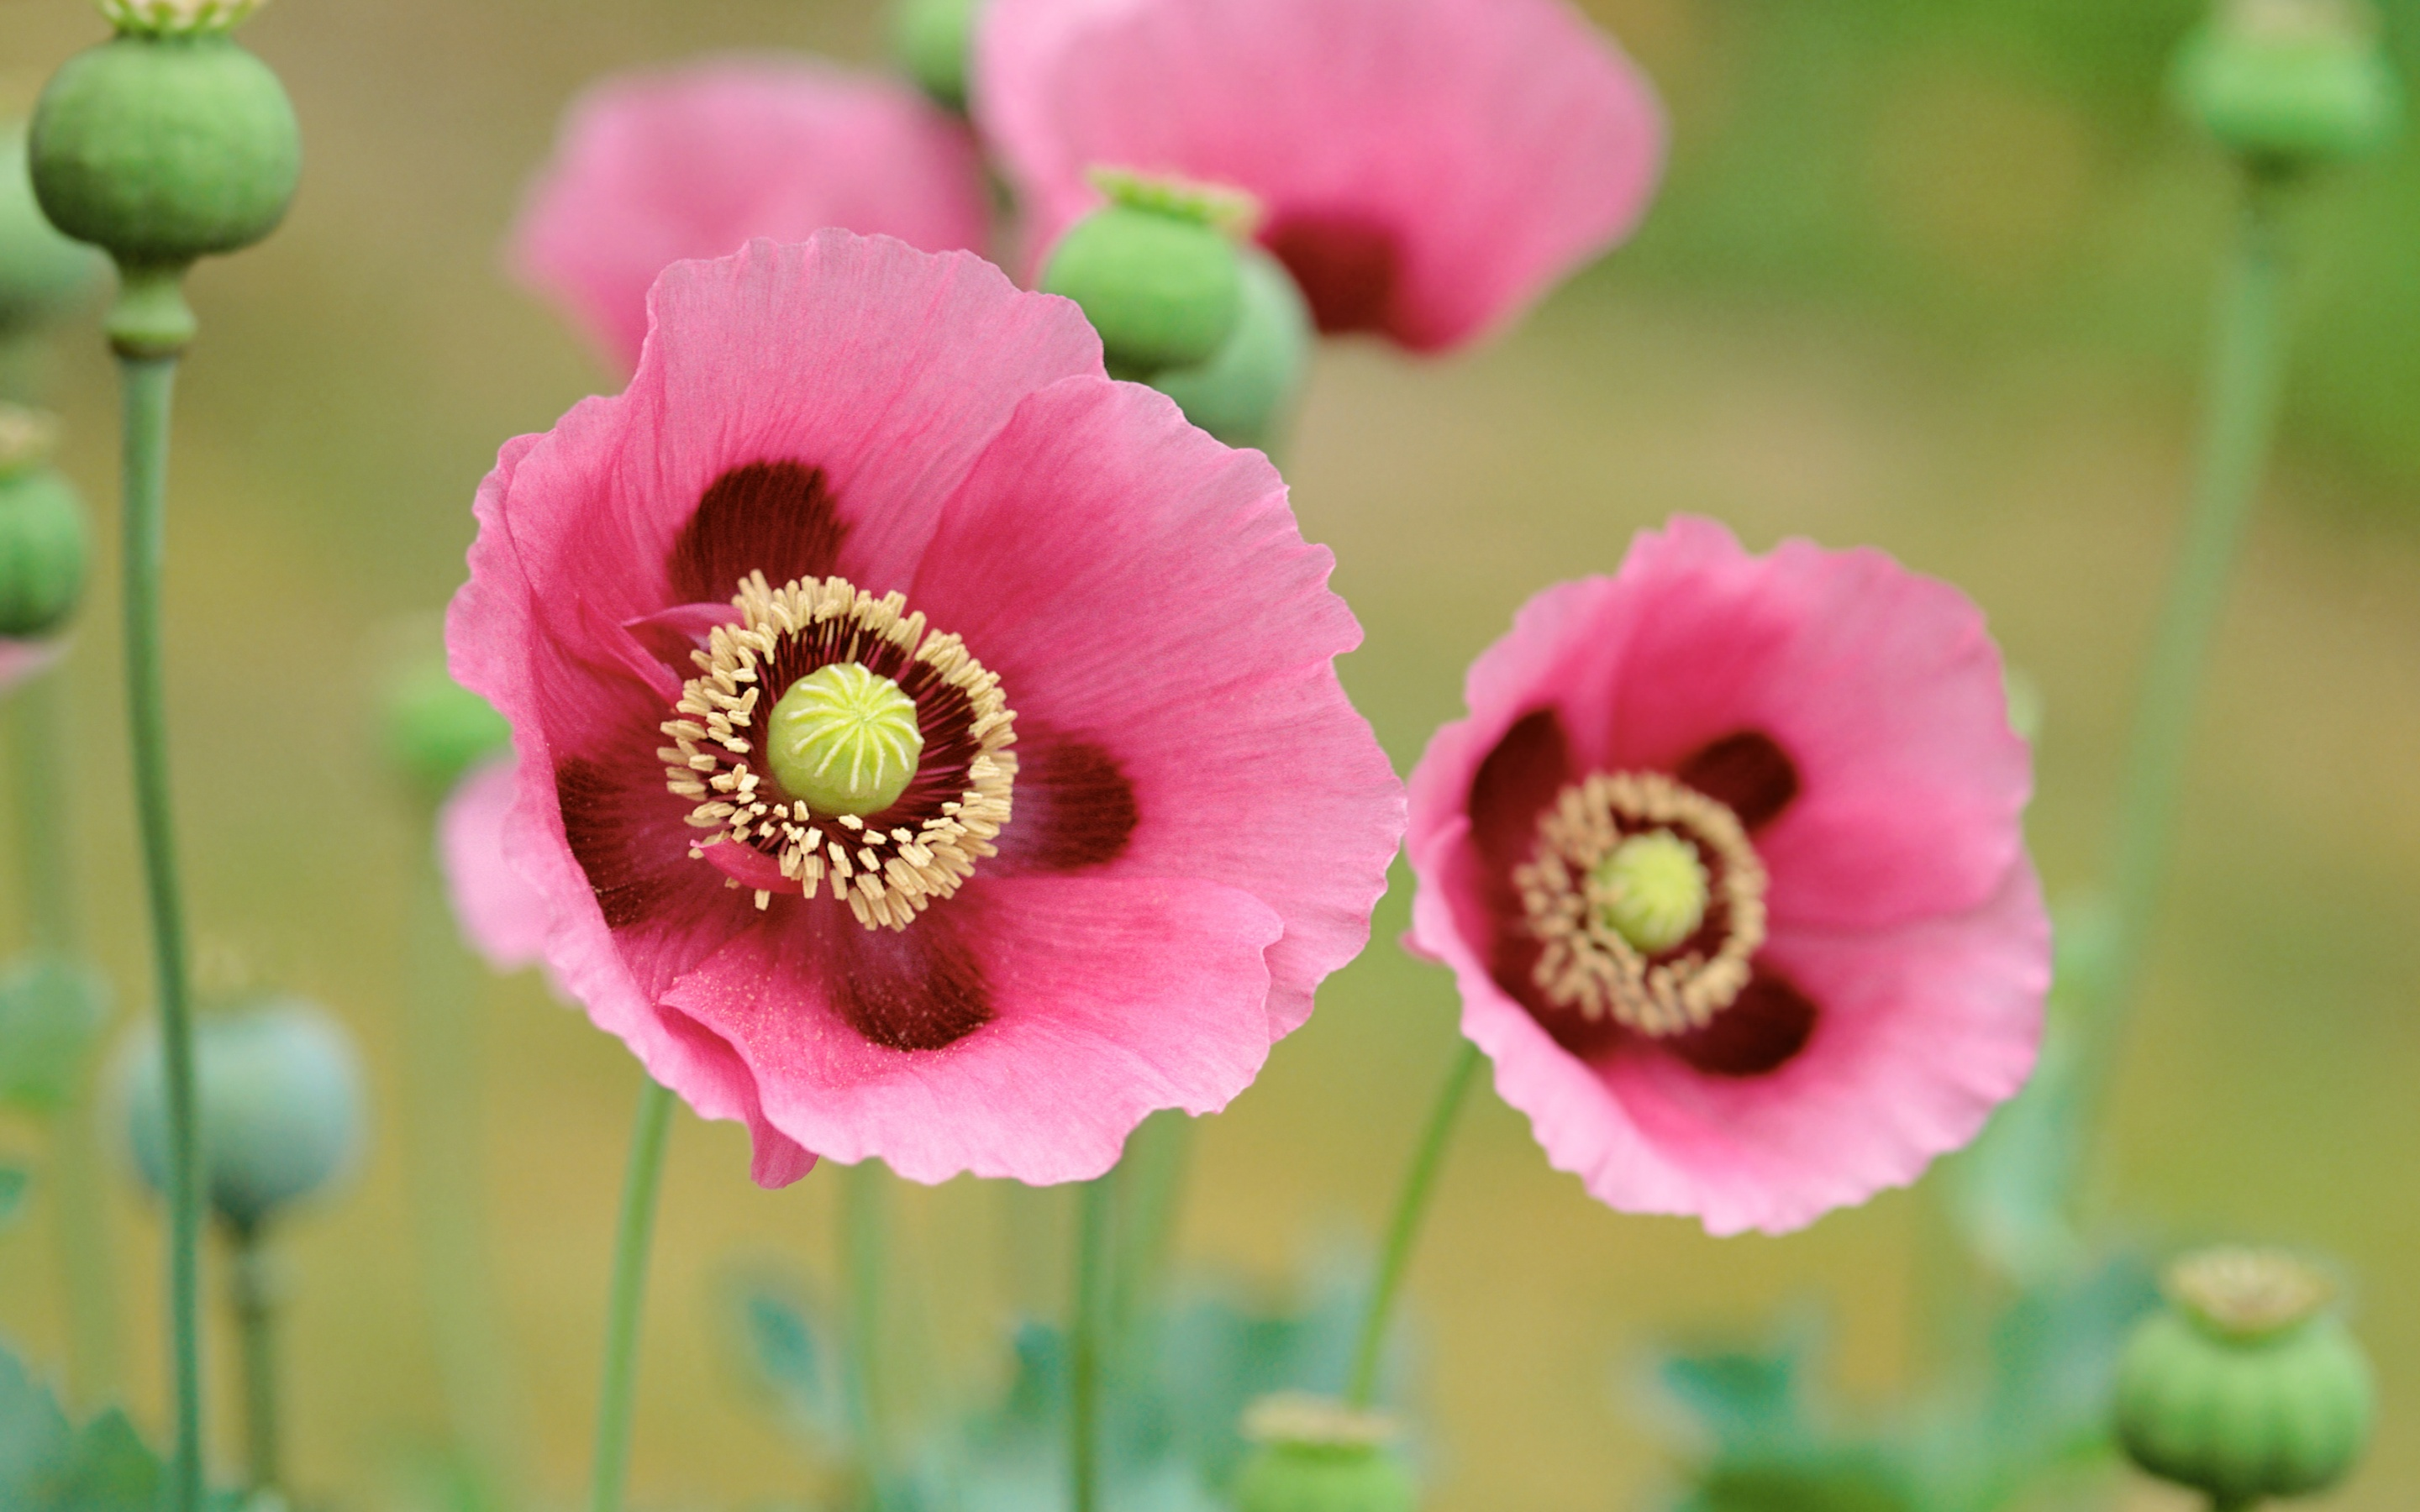 poppies flowers wallpapers in jpg format for free download